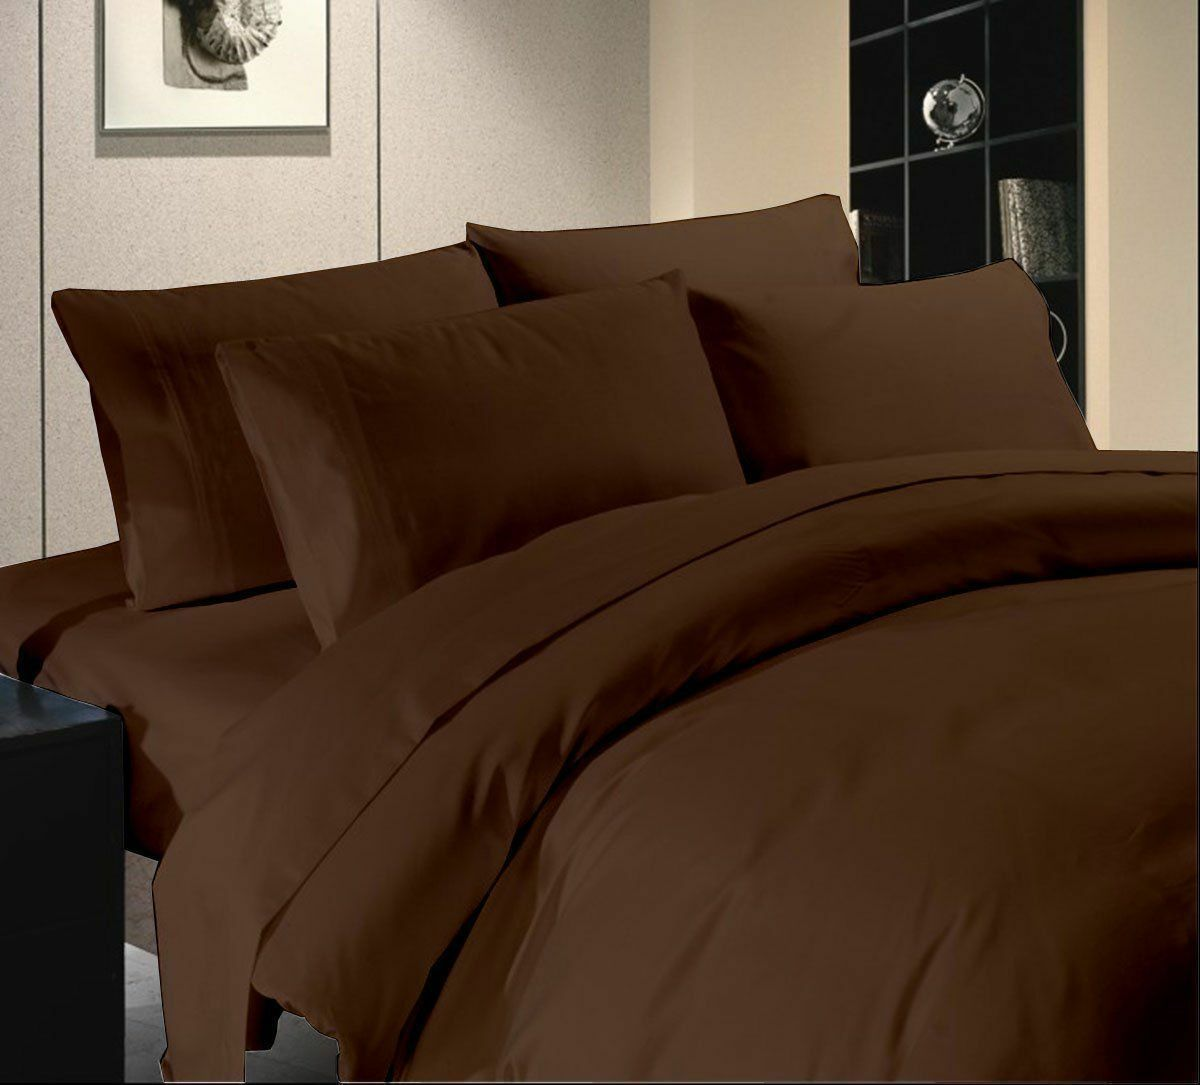 Premium Bedding Collection 1000 TC Egypt Cotton All Größes Chocolate Solid